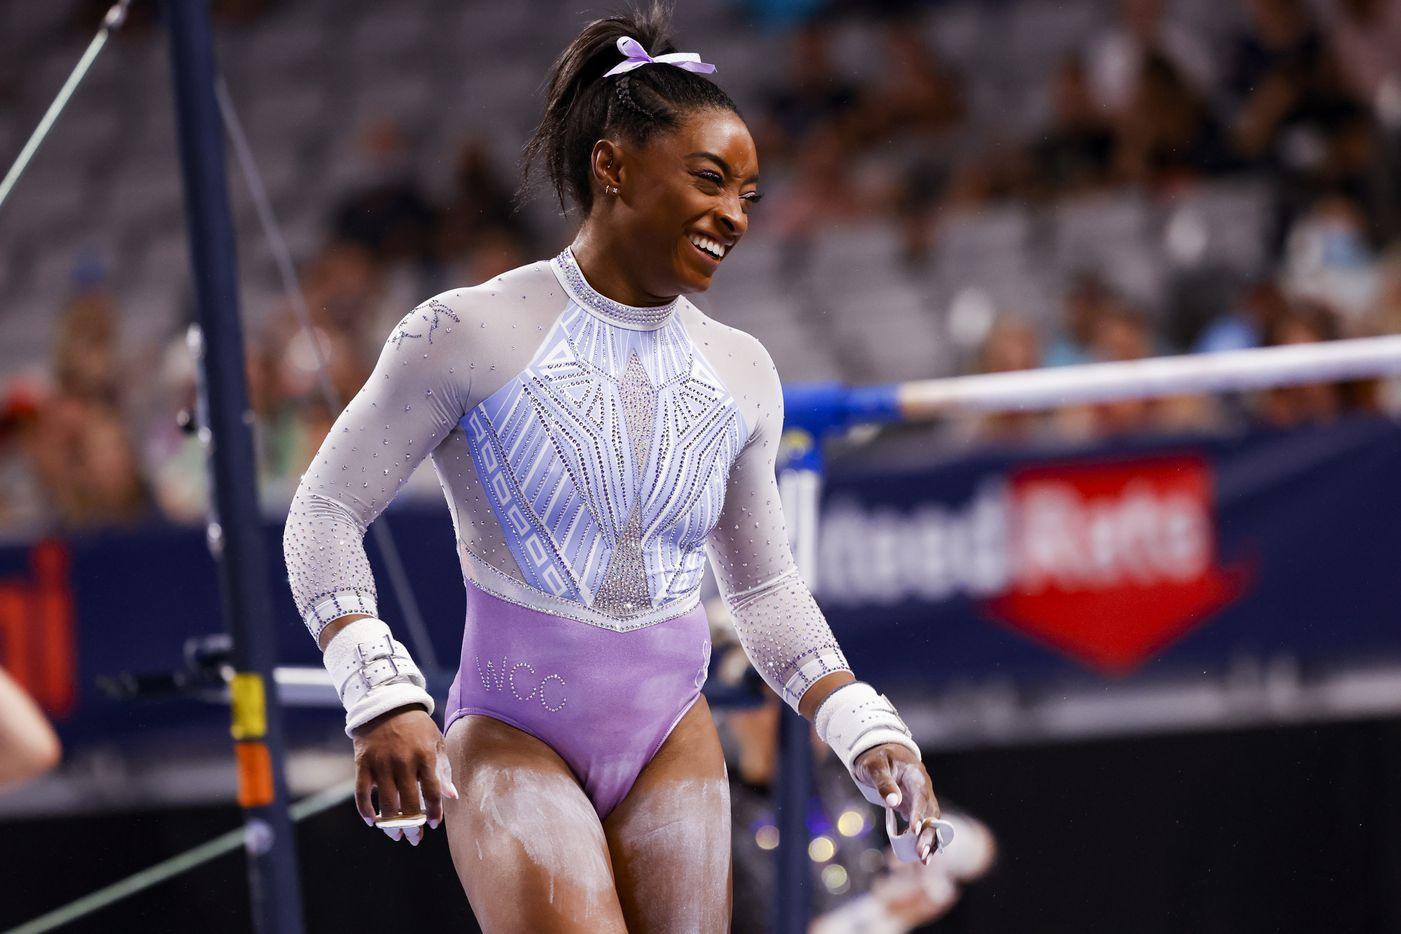 Simone Biles smiles after finishing the uneven bars during day 1 of the senior women's US gymnastics championships on Friday, June 4, 2021, at Dickies Arena in Fort Worth. (Juan Figueroa/The Dallas Morning News)